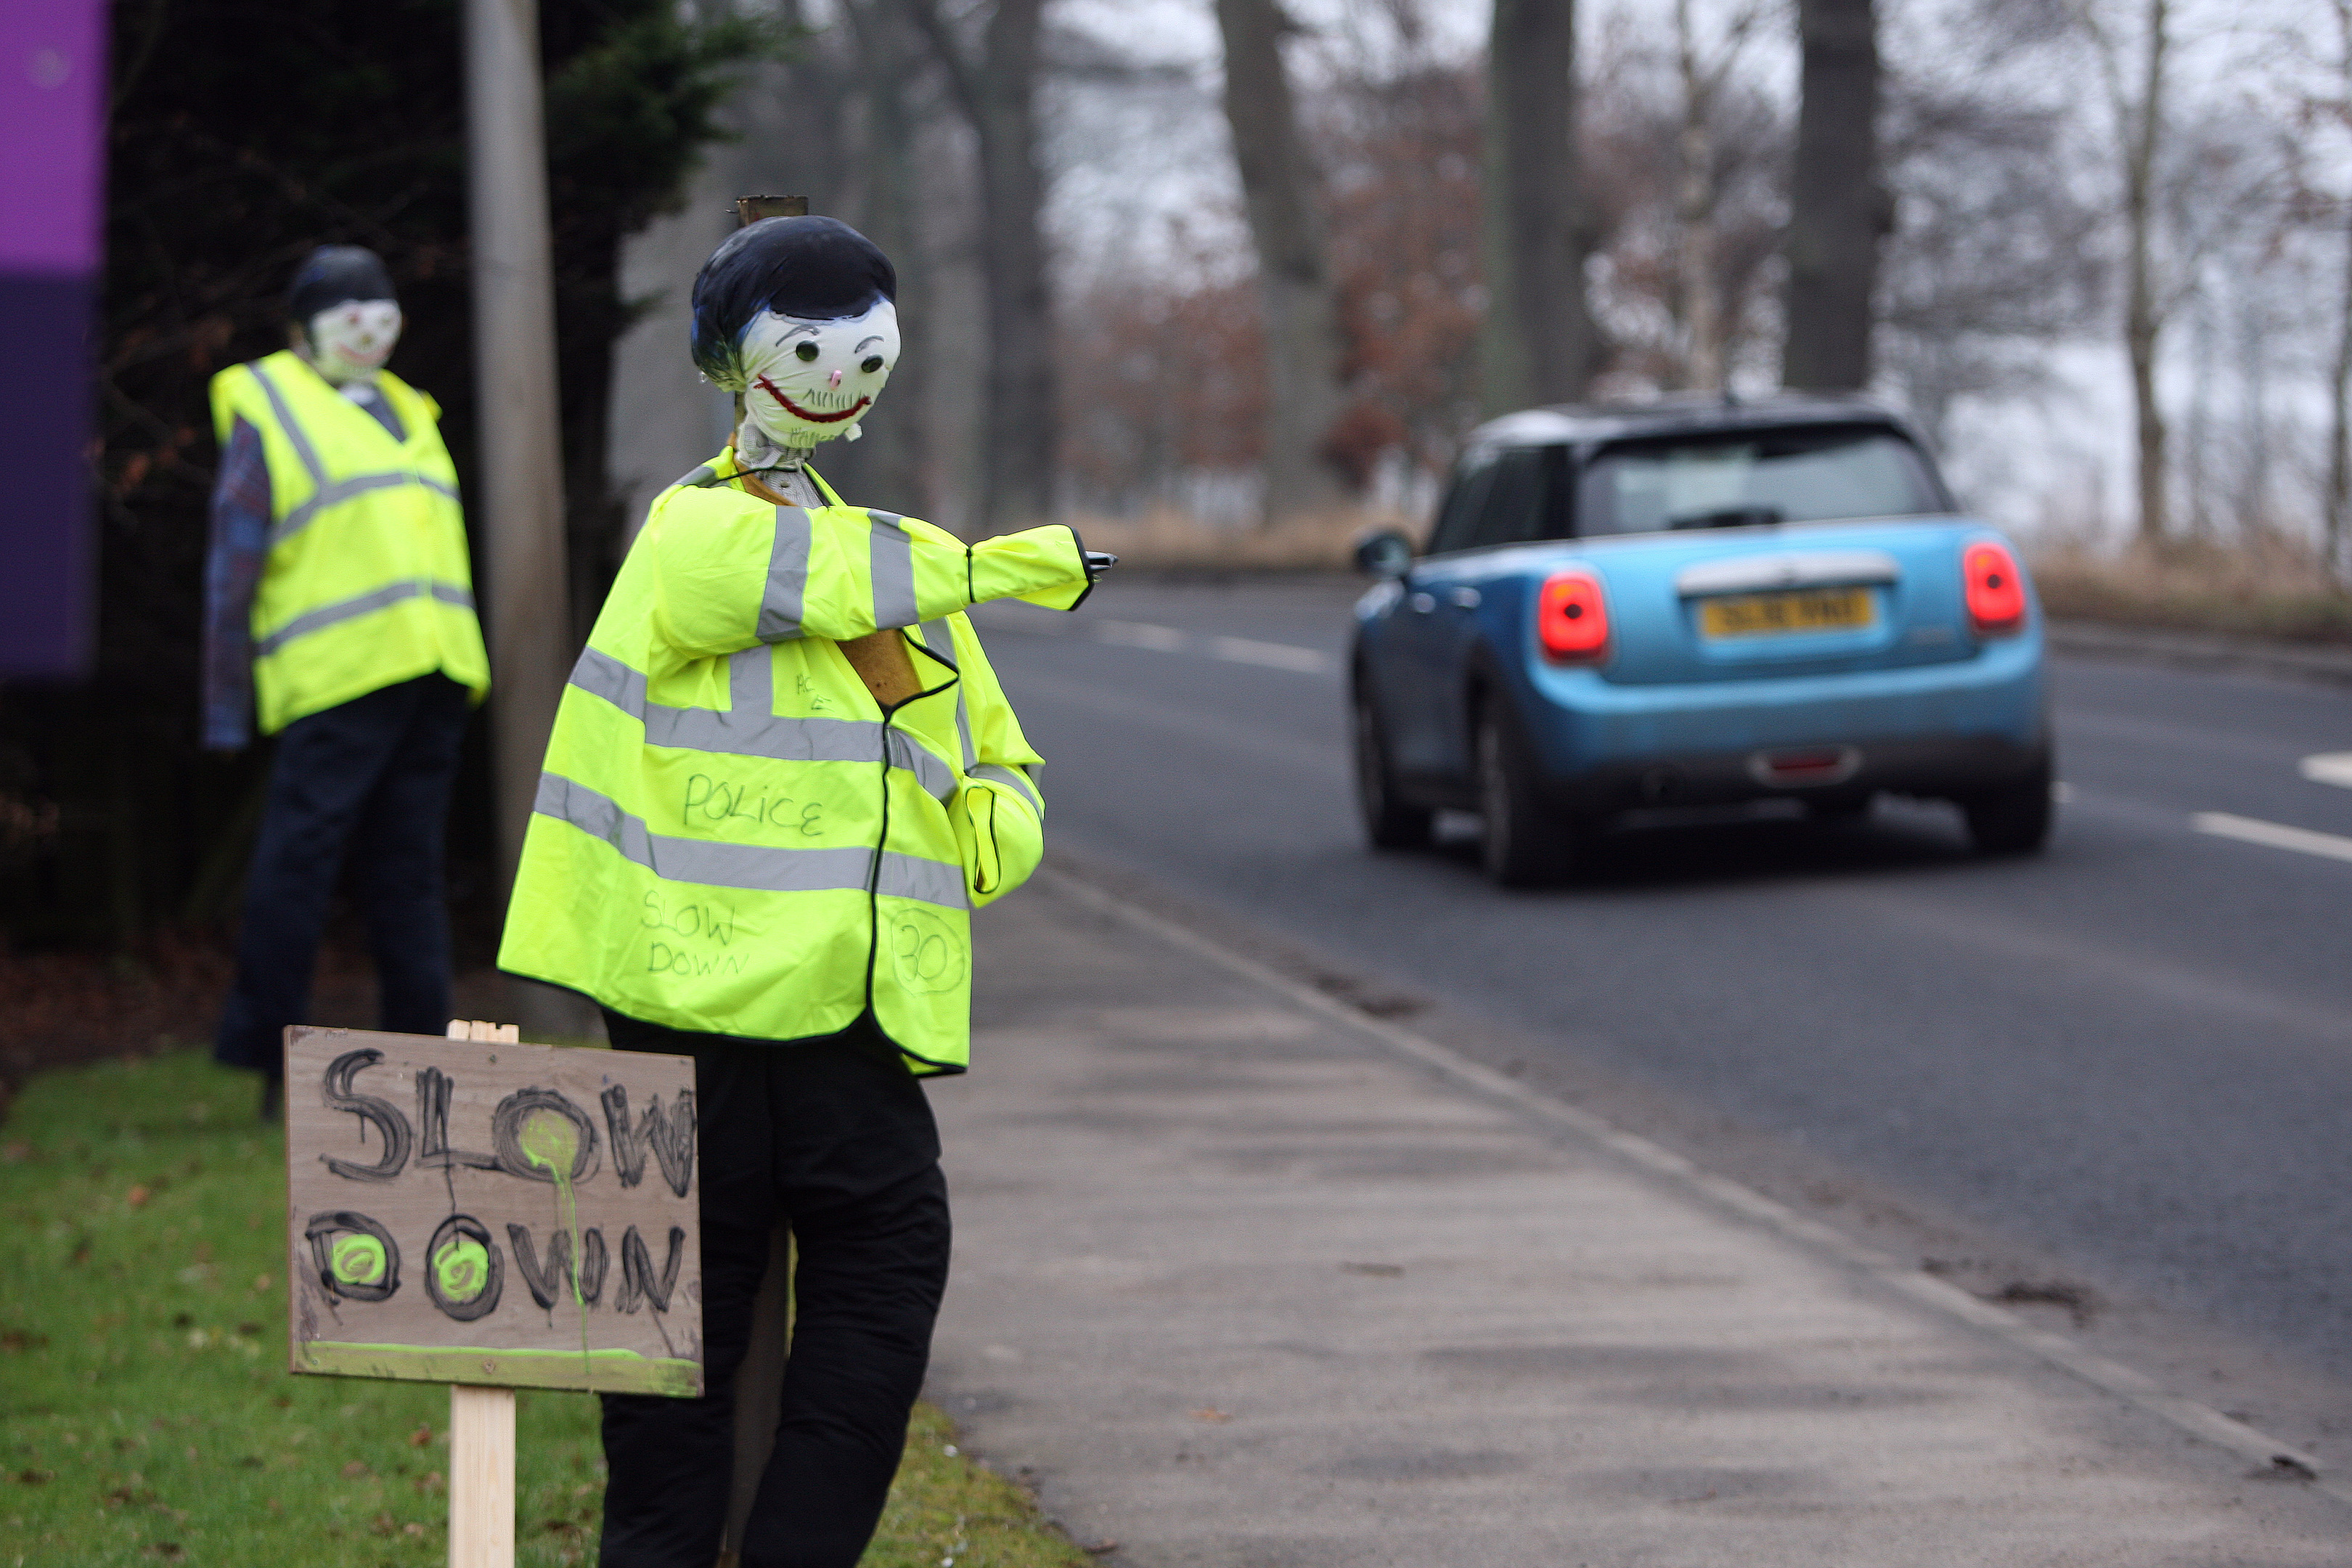 Scarecrow policemen have made an appearance on land near to where Harlow Edwards was tragically killed by a car mounting the pavement (DC Thomson)